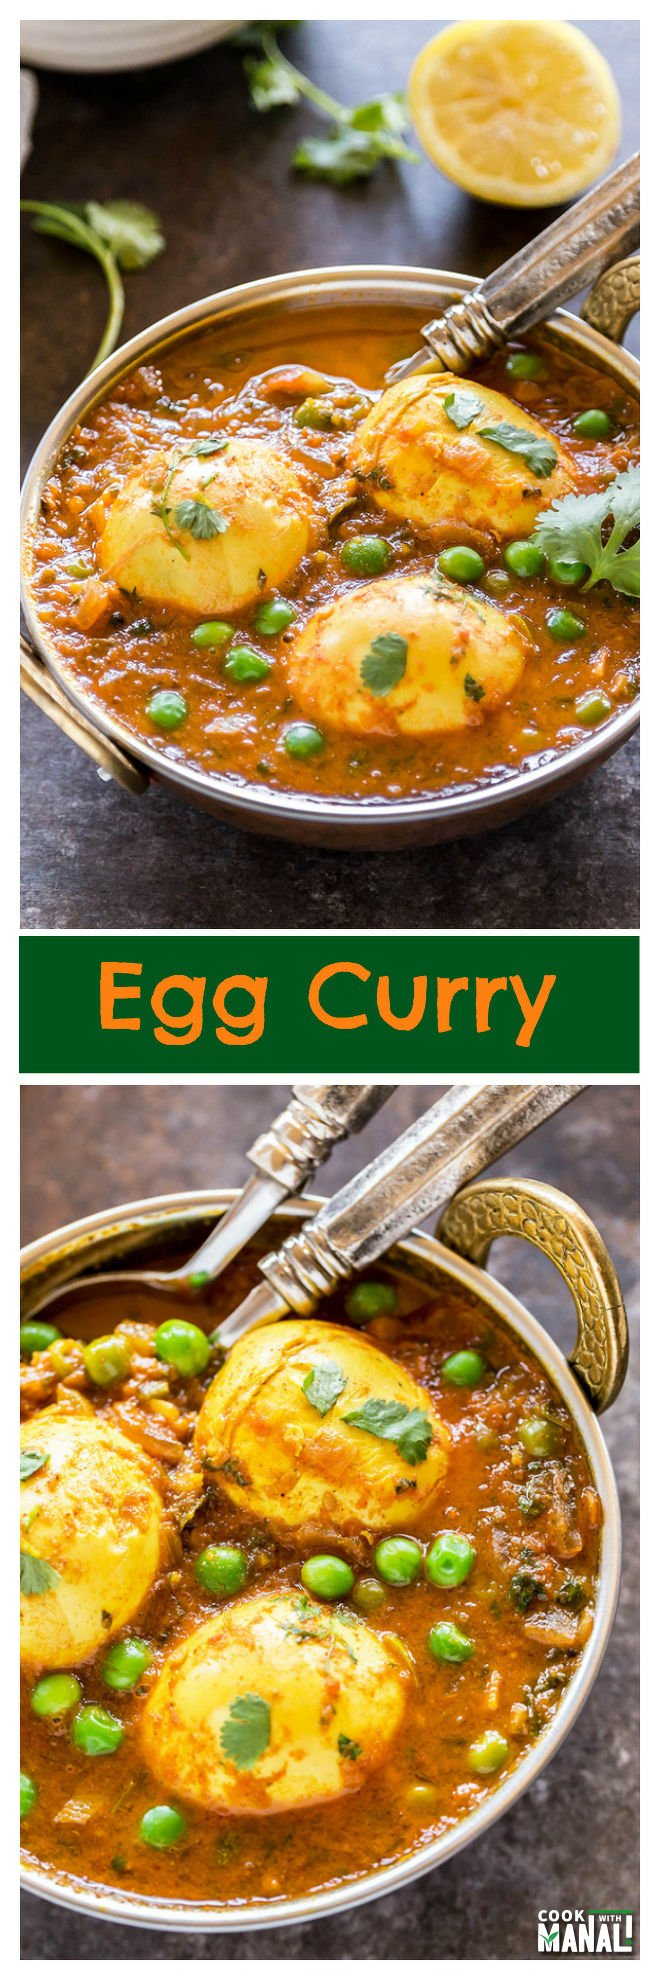 egg-curry-collage